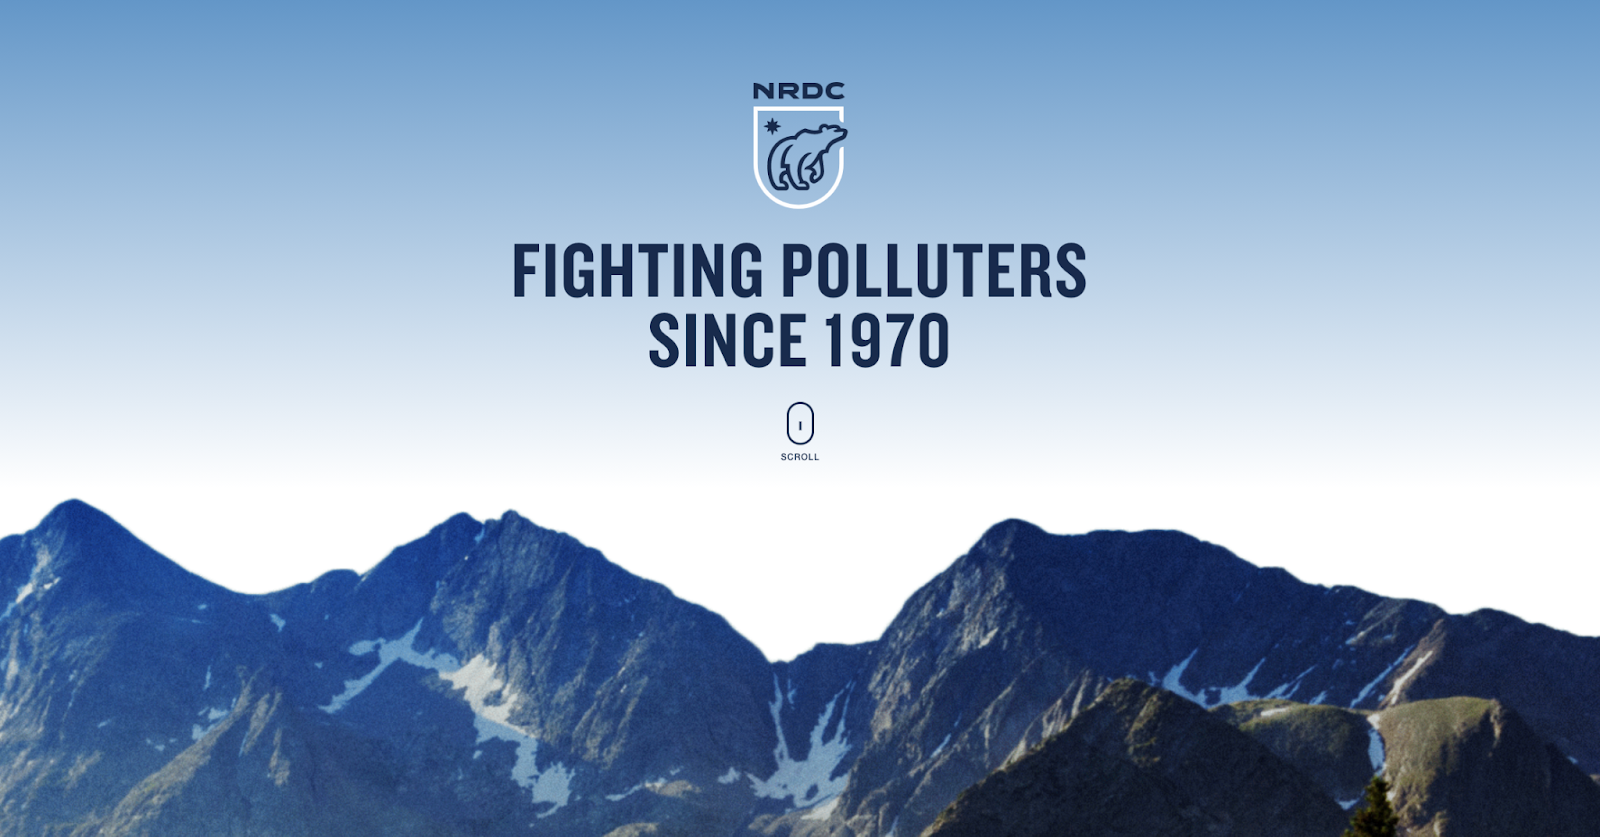 NRDC nominated for a Webby Award